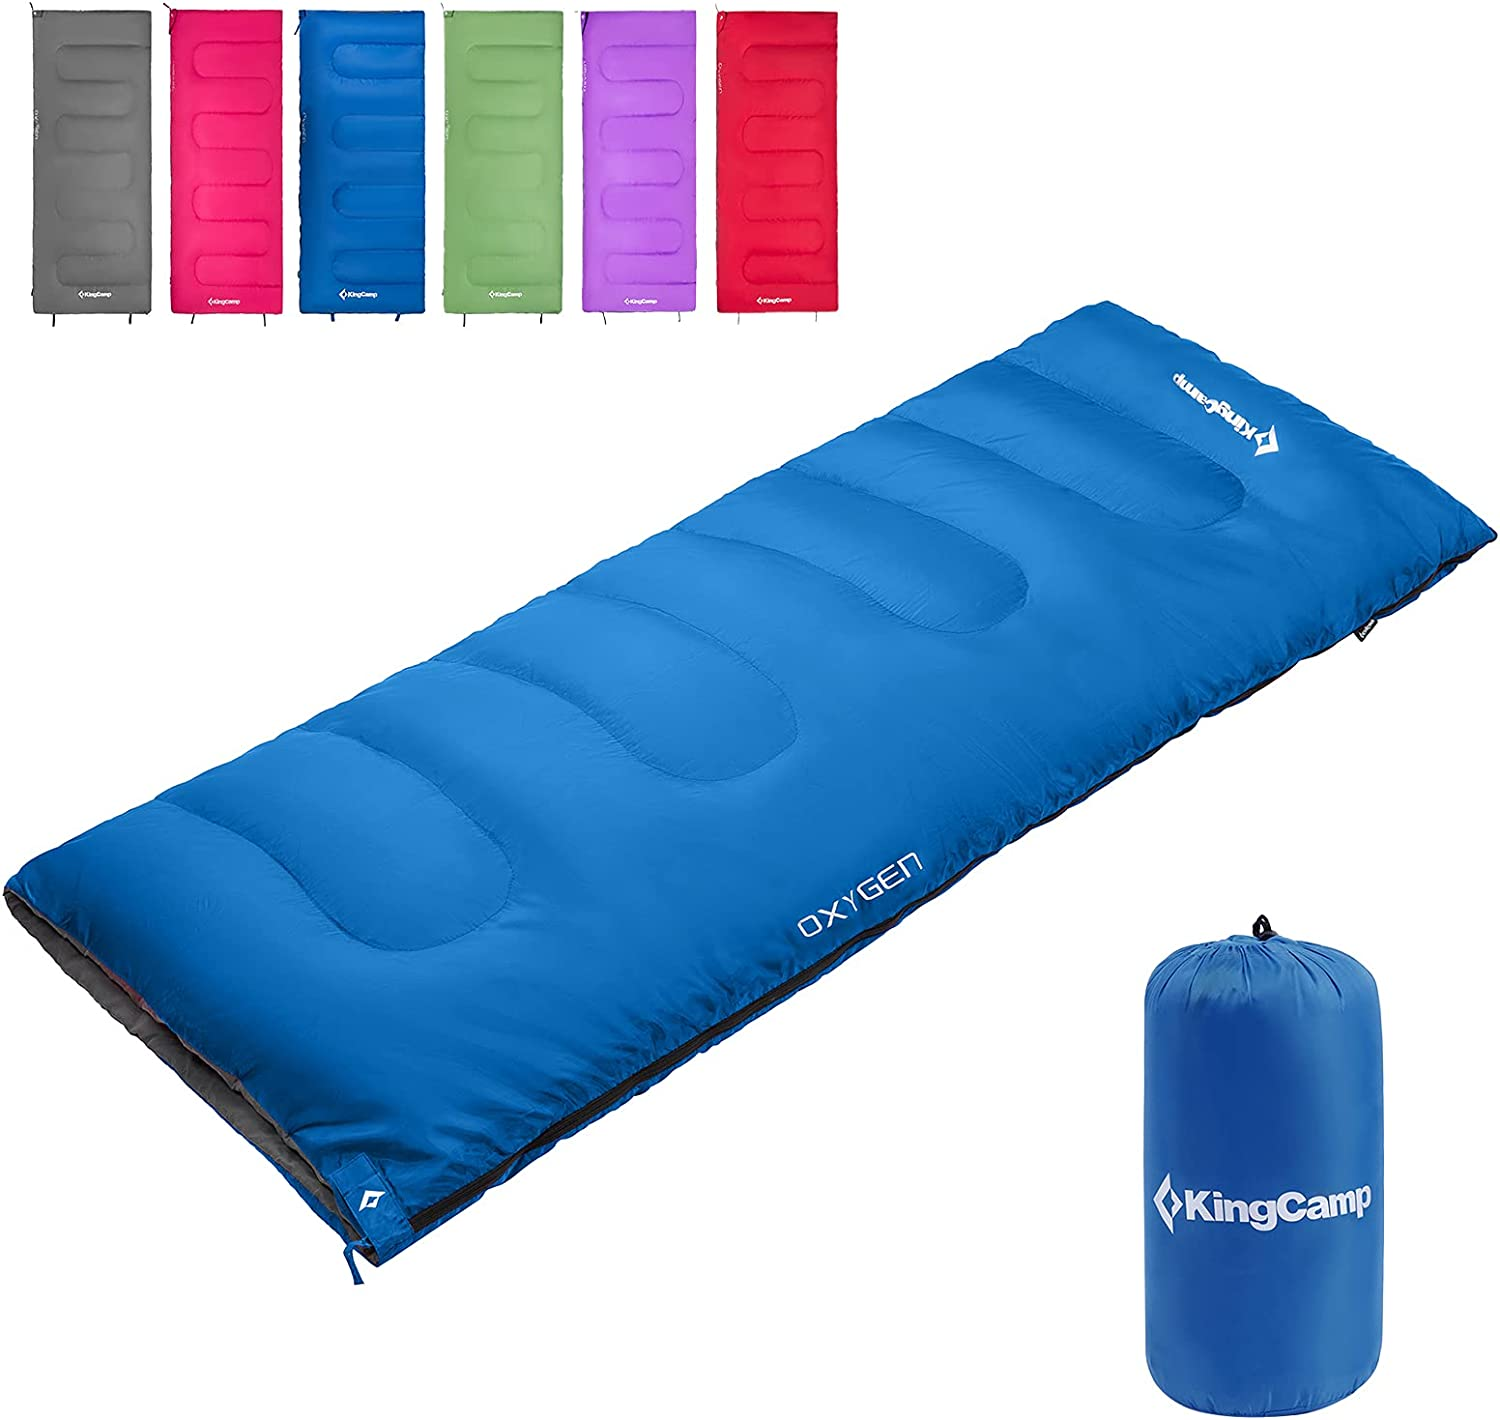 KingCamp 3 Season Camping Rapid rise Sleeping National products Lightw Envelope Bags Joinable